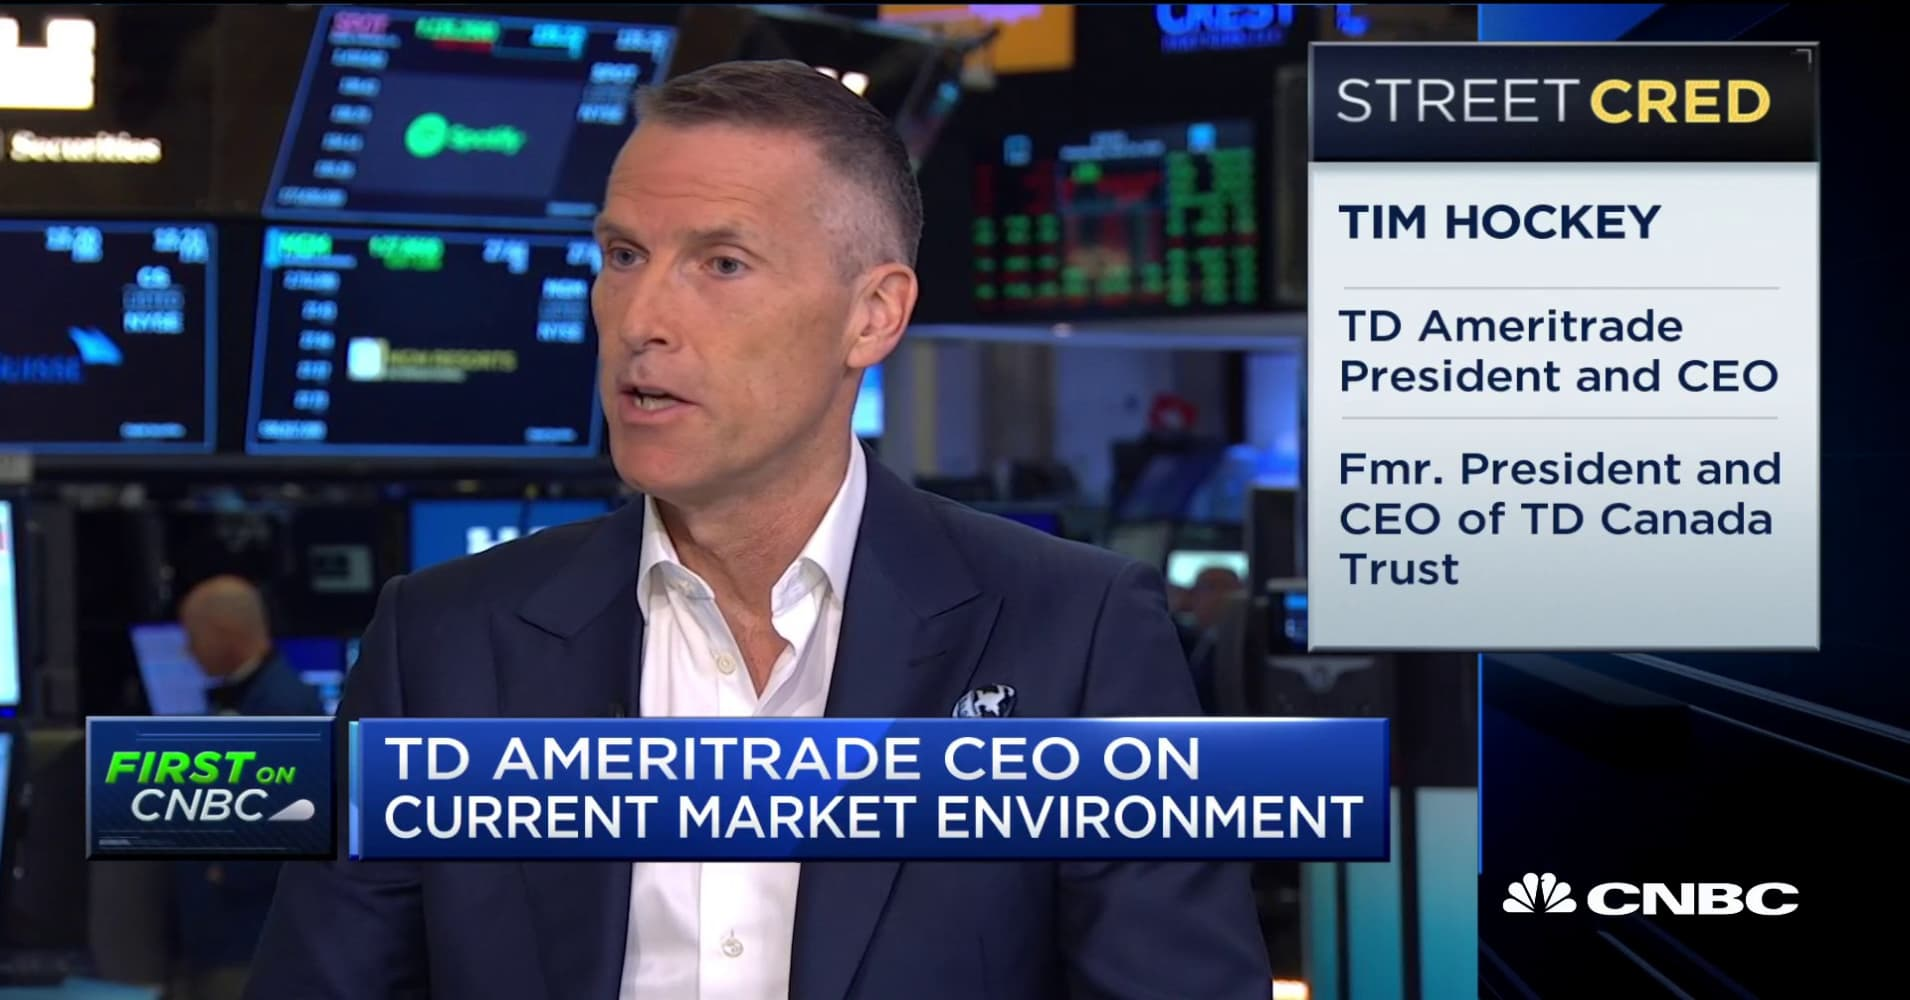 TD Ameritrade CEO Tim Hockey on earnings, market environment